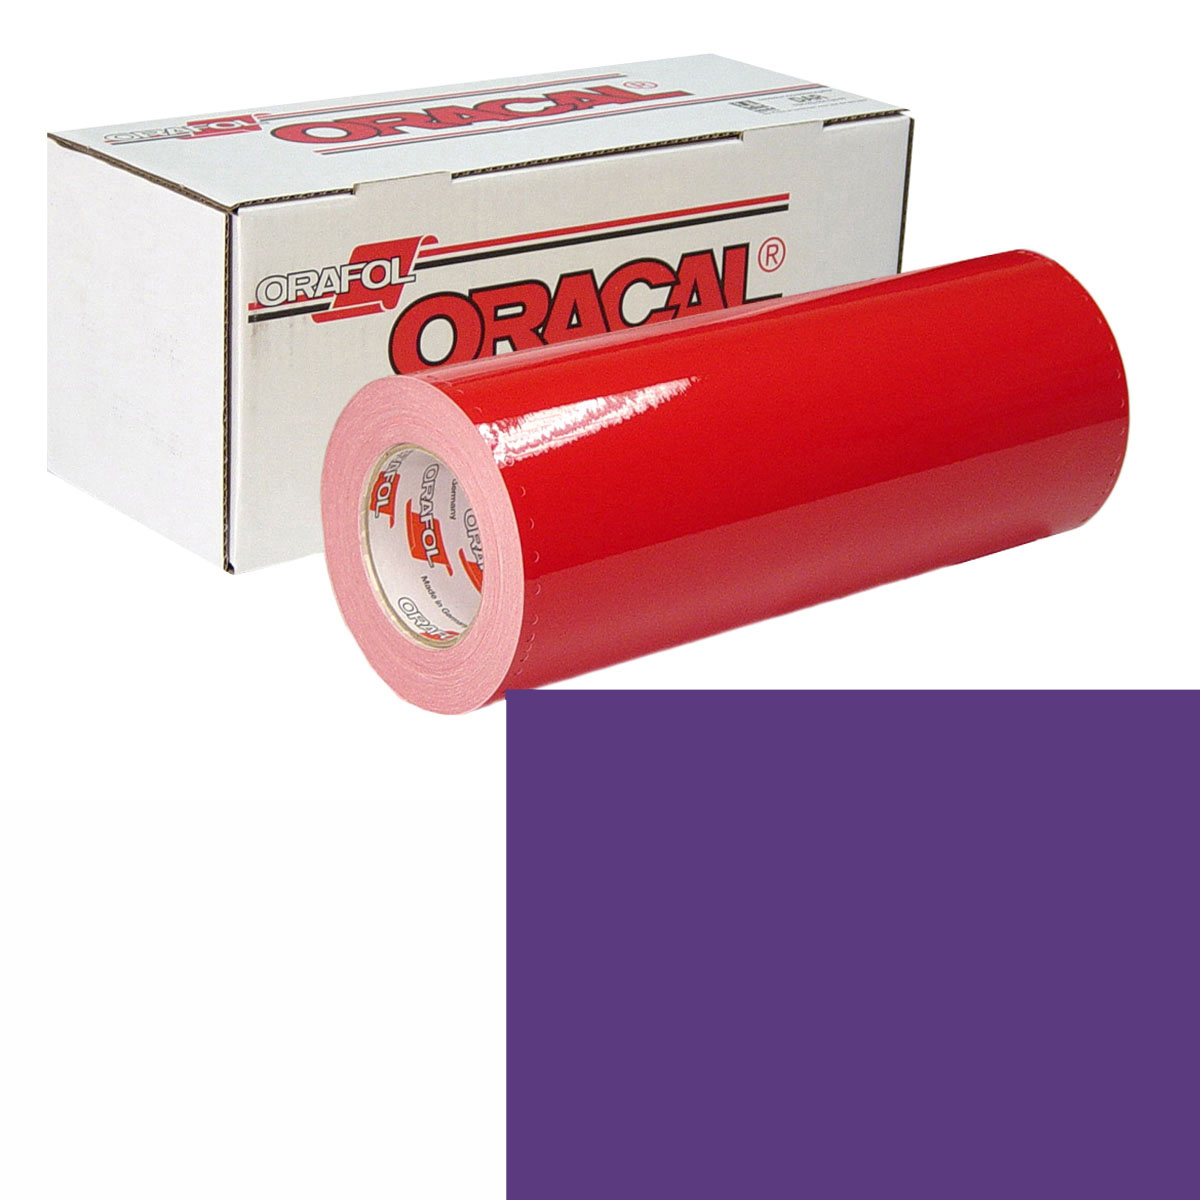 BUY ORACAL 951 15in X 10yd 407 Deep Violet